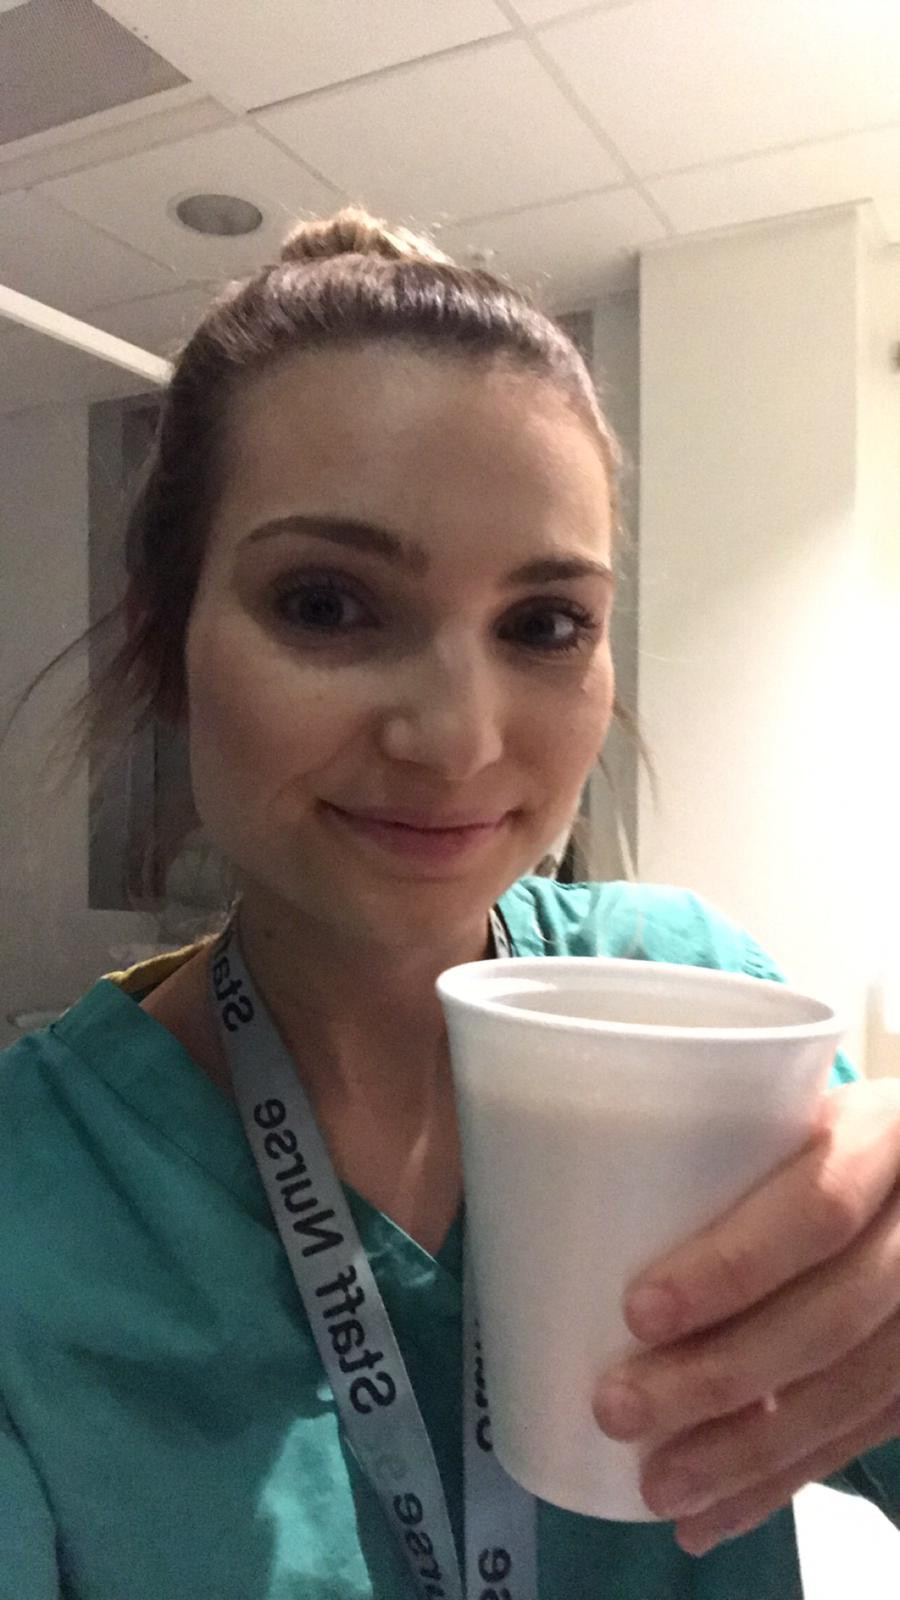 travel nurse and lifestyle blogger kirsten conrad drinking coffee